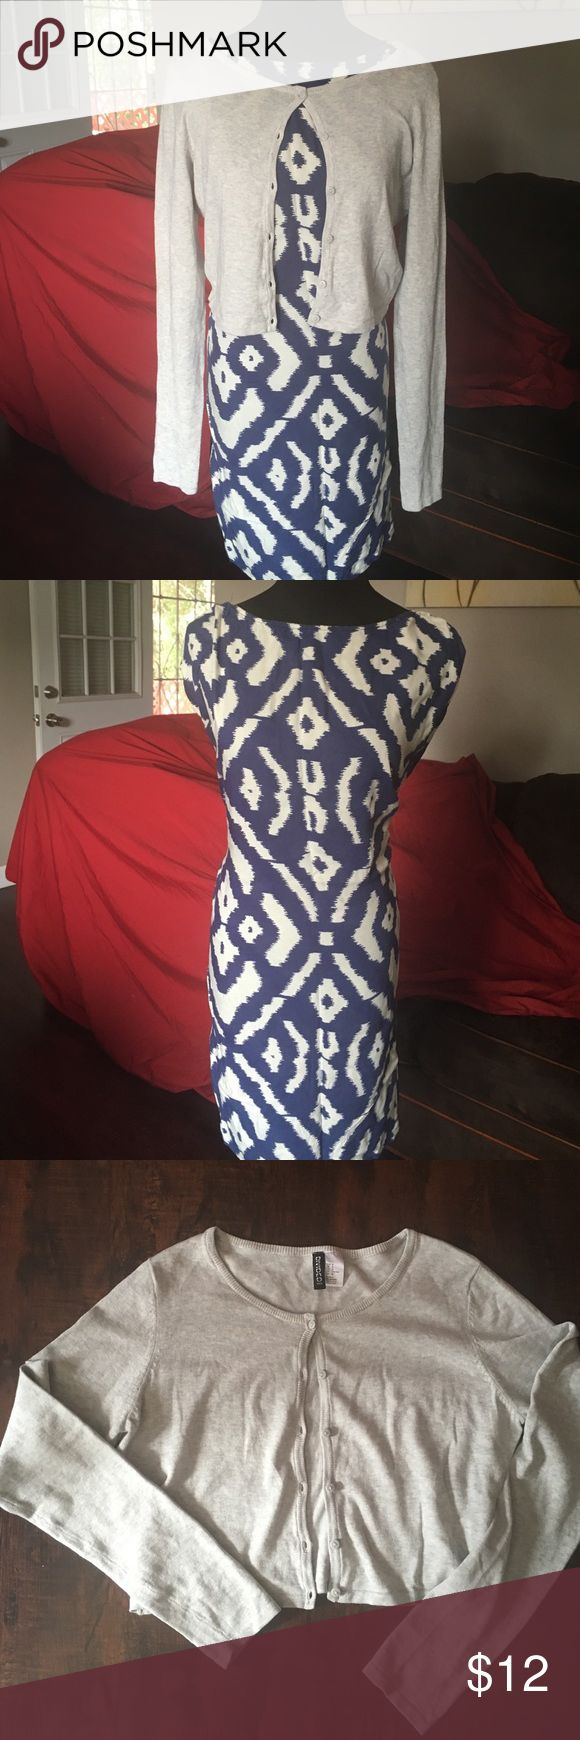 Tribal patterned dress and grey crop cardigan Tribal patterned blue and ivory dress. Grey crop cardigan Thank you for looking. Please remember that NO REASONABLE offer is refused. Happy Poshing ❤️😘🎉😍 Angie Dresses